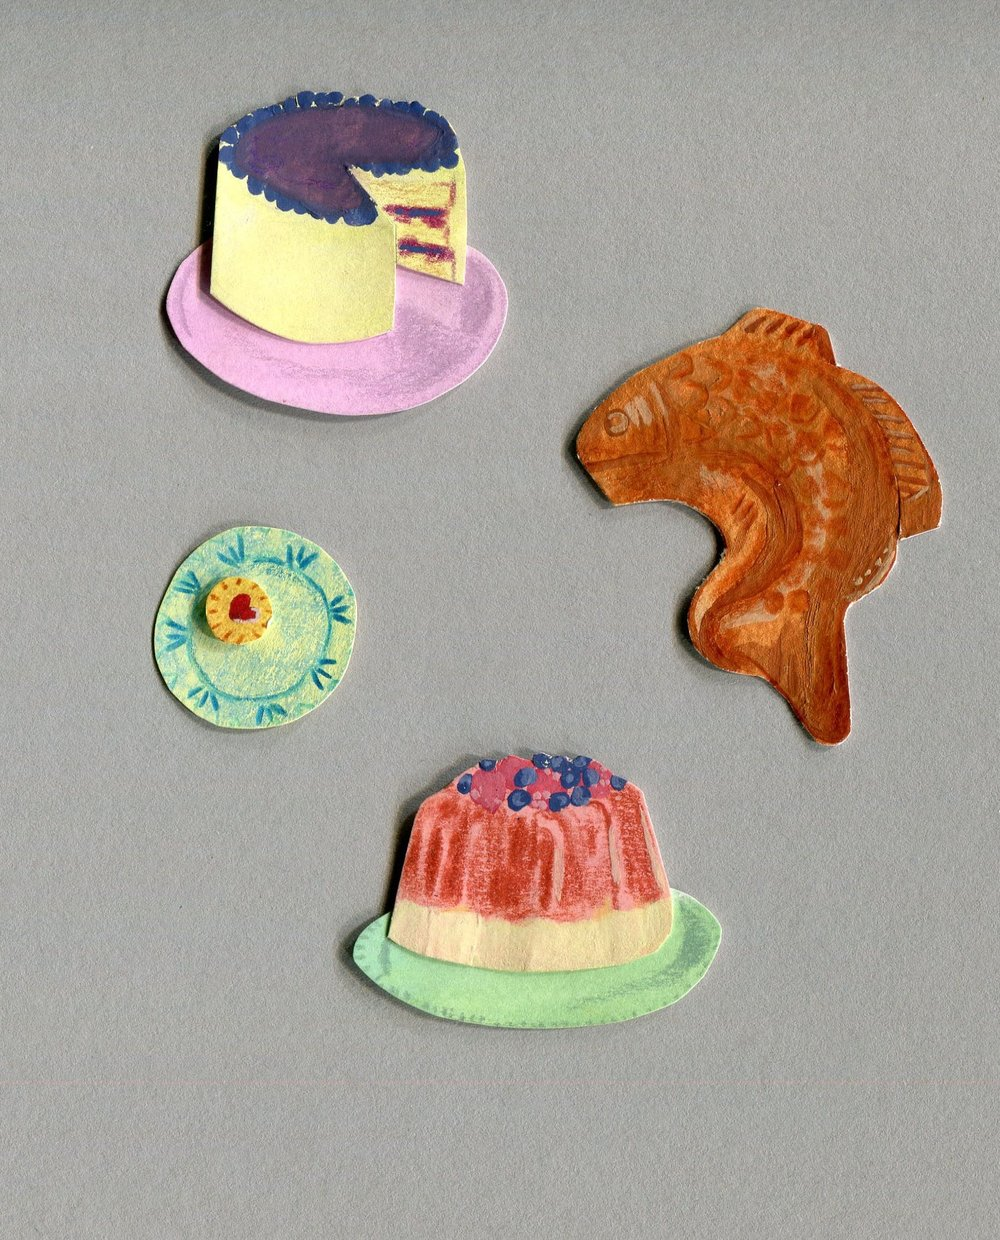 jelly_cake_food_illustration.jpg